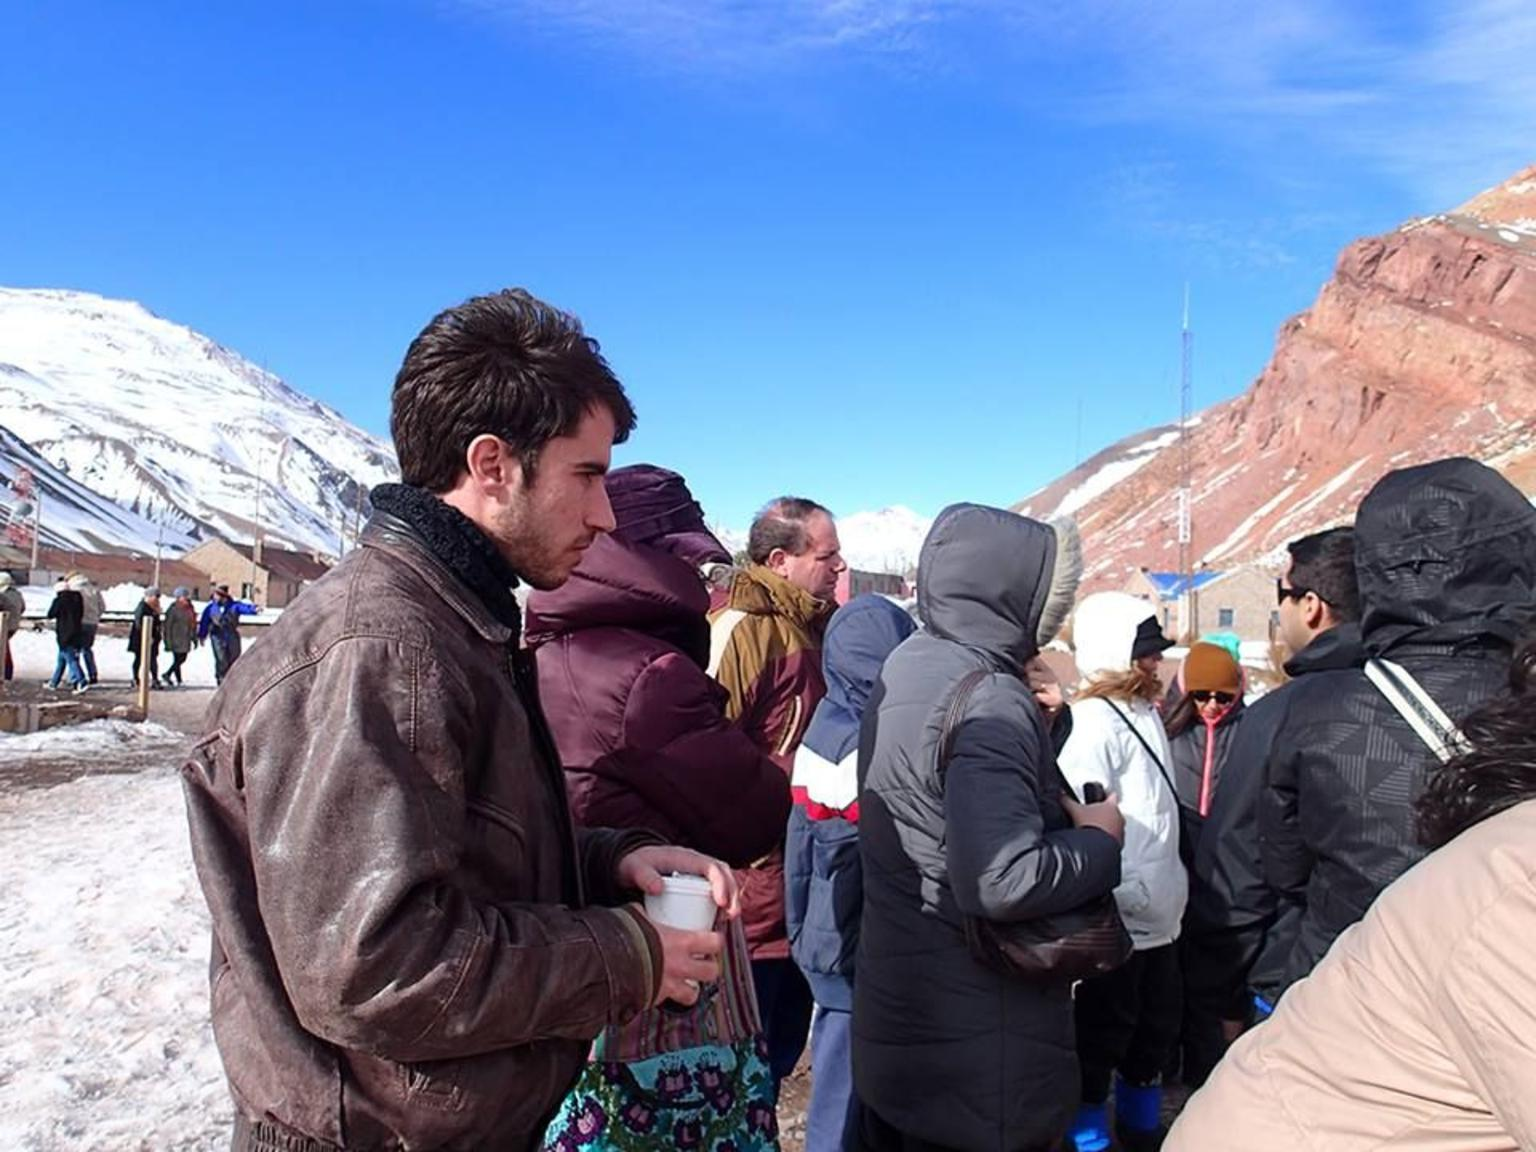 MORE PHOTOS, Andes Day Trip from Mendoza Including Aconcagua, Uspallata and Puente del Inca